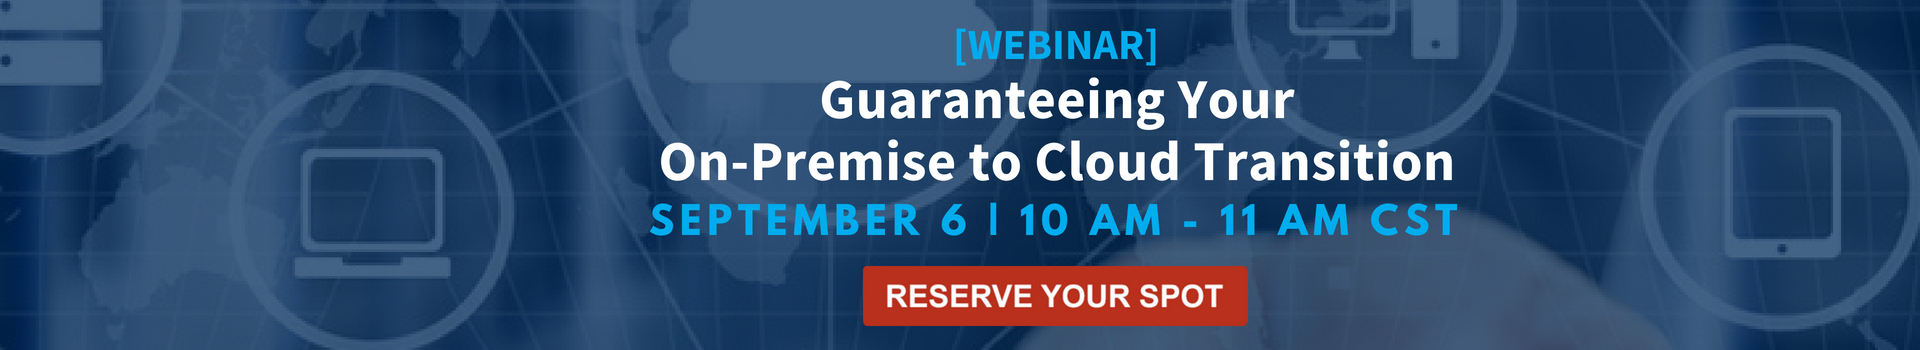 Cloud Transition Webinar Banner